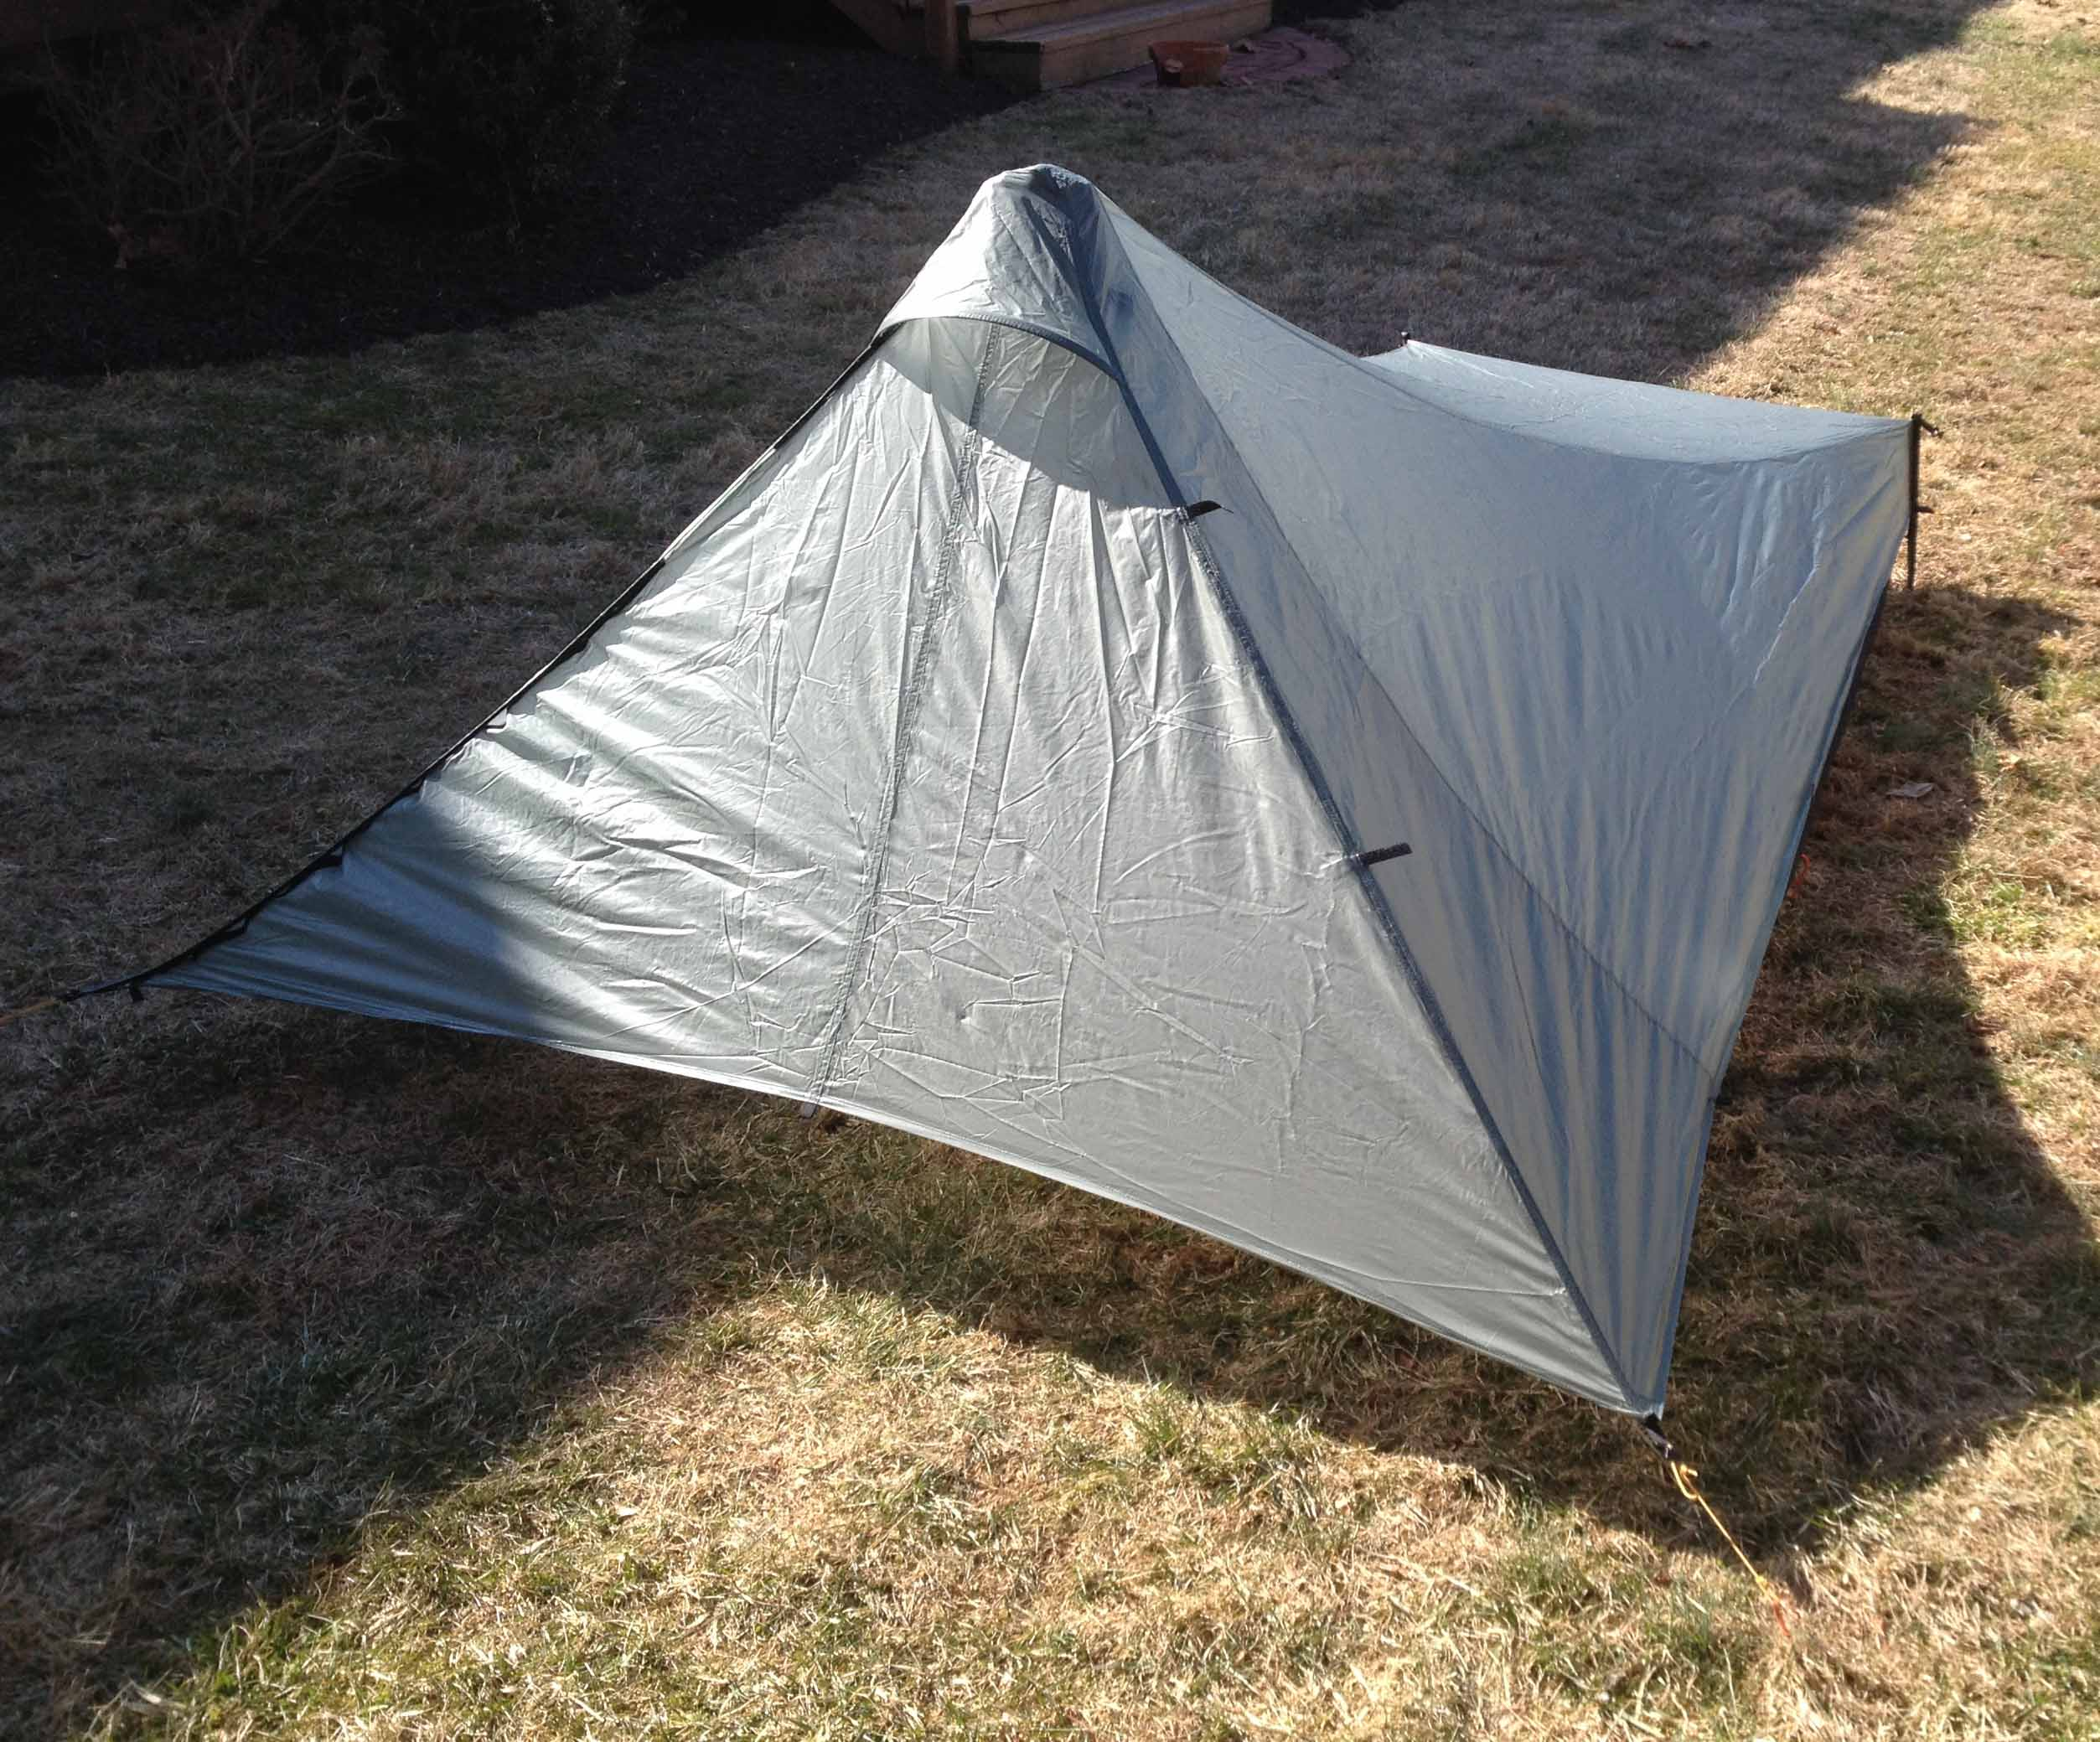 $160 shipped CONUS PayPal Goods u0026 Services (Iu0027ll pay fee; Gu0026S makes it much easier for me to ship packages). Can ship outside CONUS but will need to add ... & FS: TarpTent Contrail w/back pole trekking pole handle adapters ...